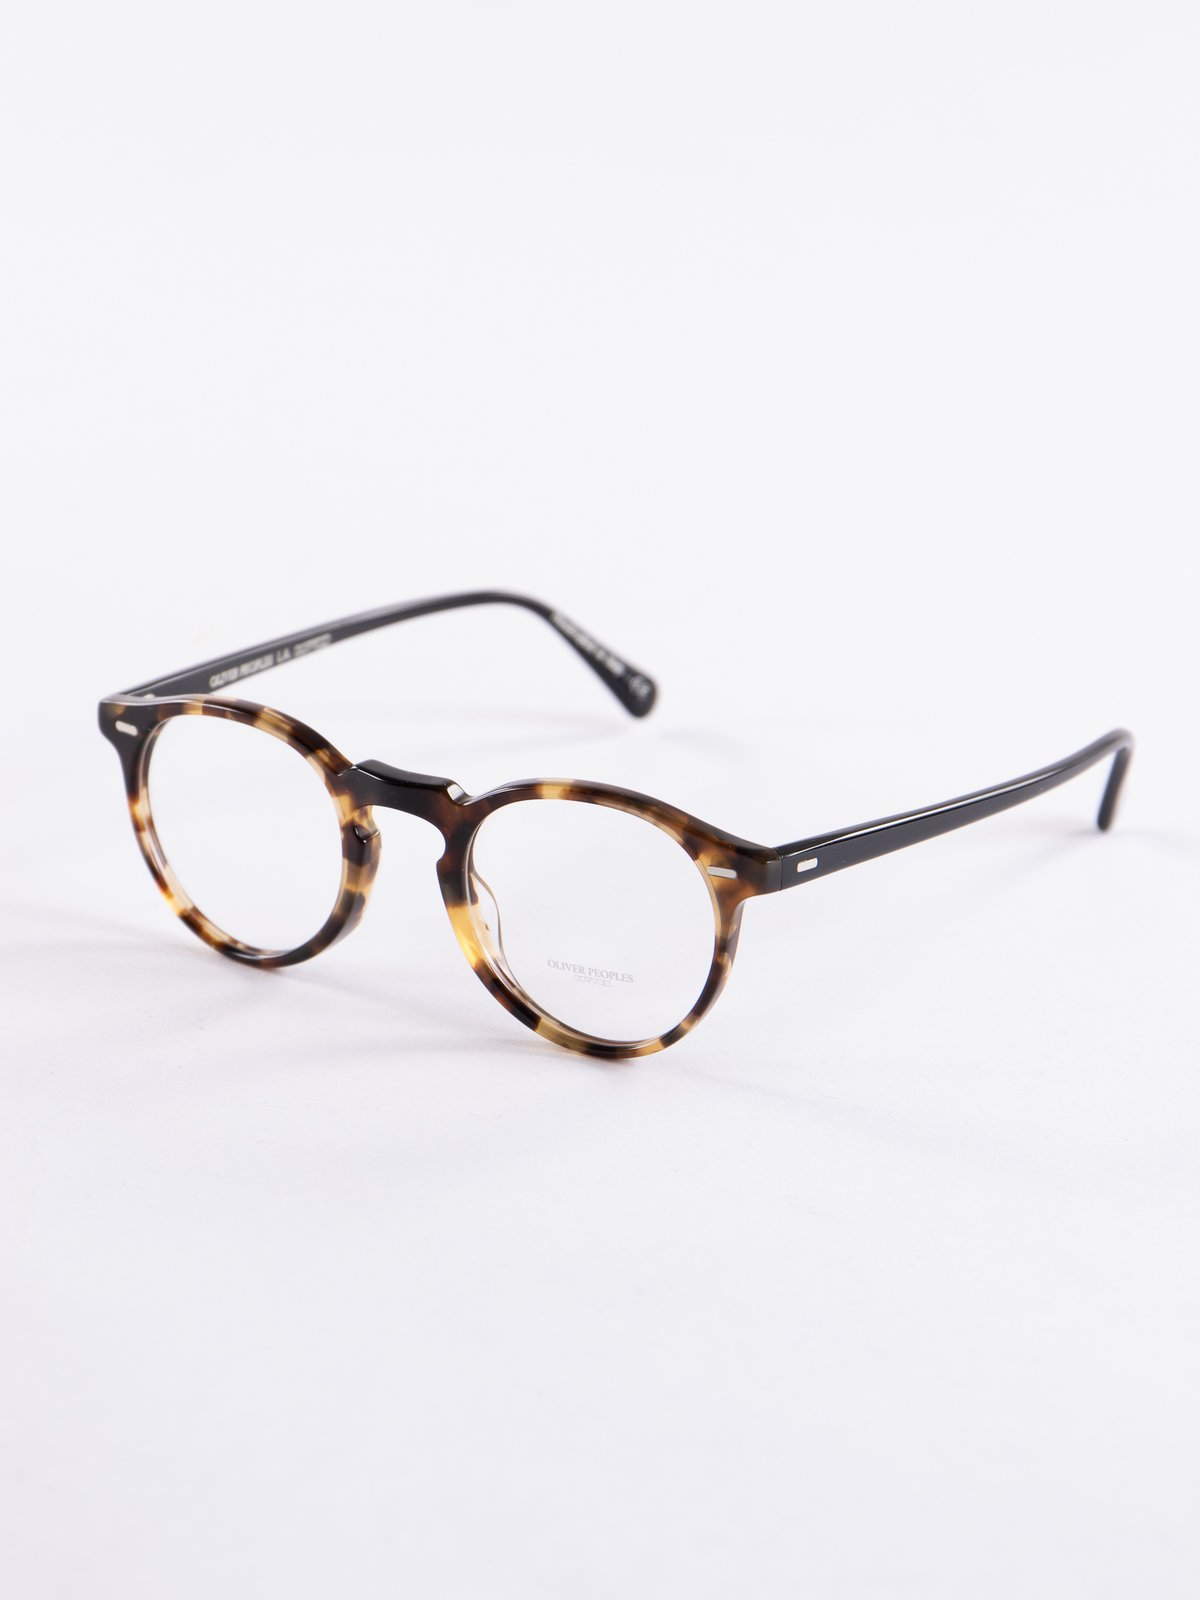 9e5a7329034 Hickory Tortoise Gregory Peck Optical Frame by Oliver Peoples – The ...